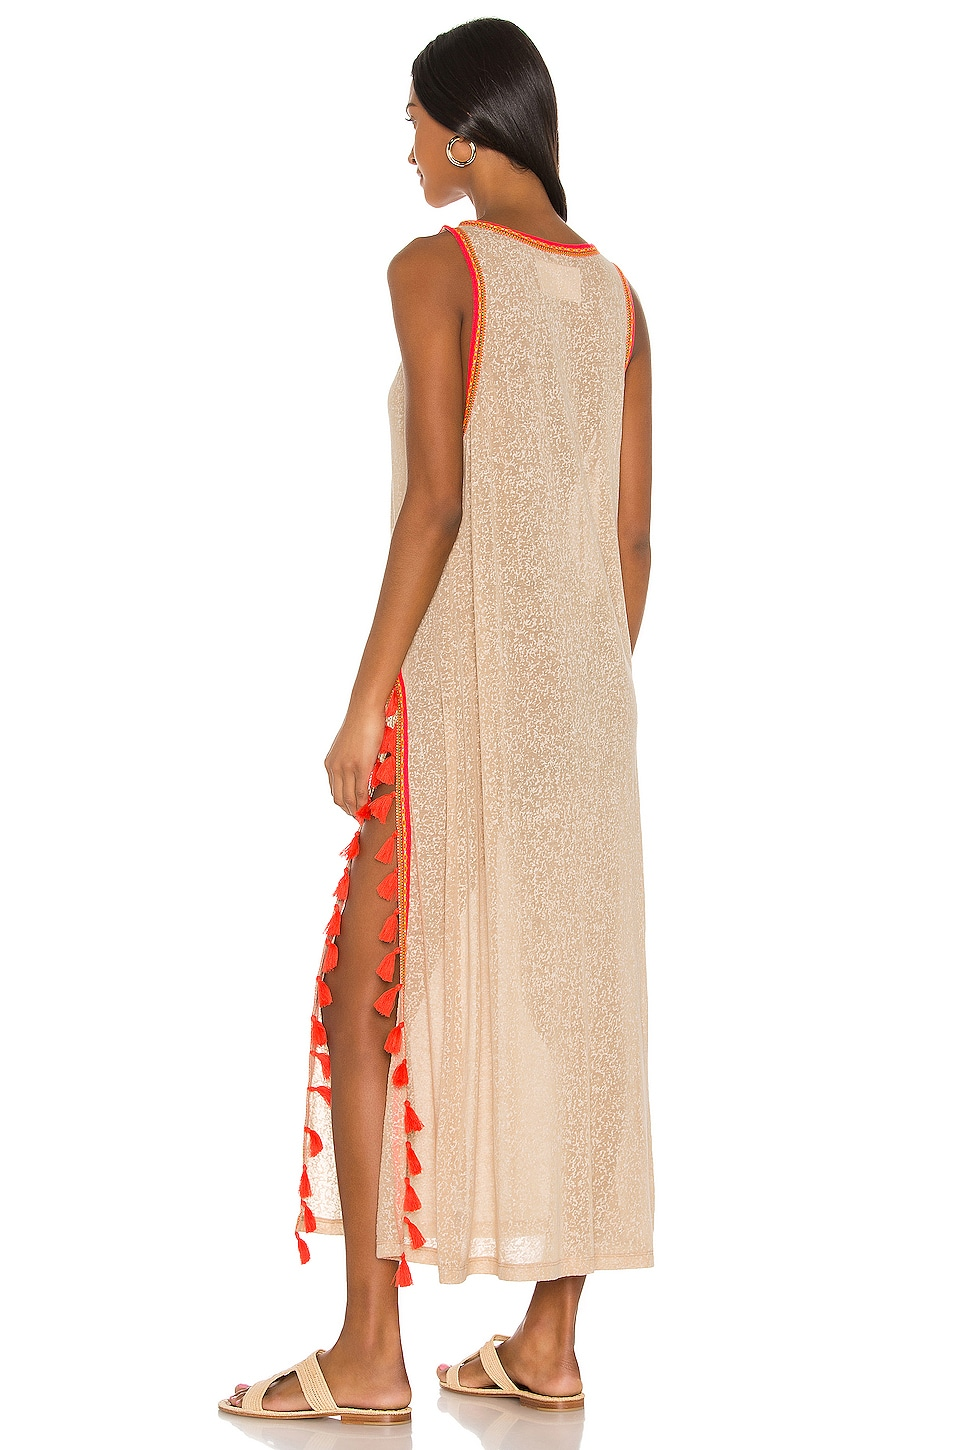 Tassel Slit Dress, view 3, click to view large image.